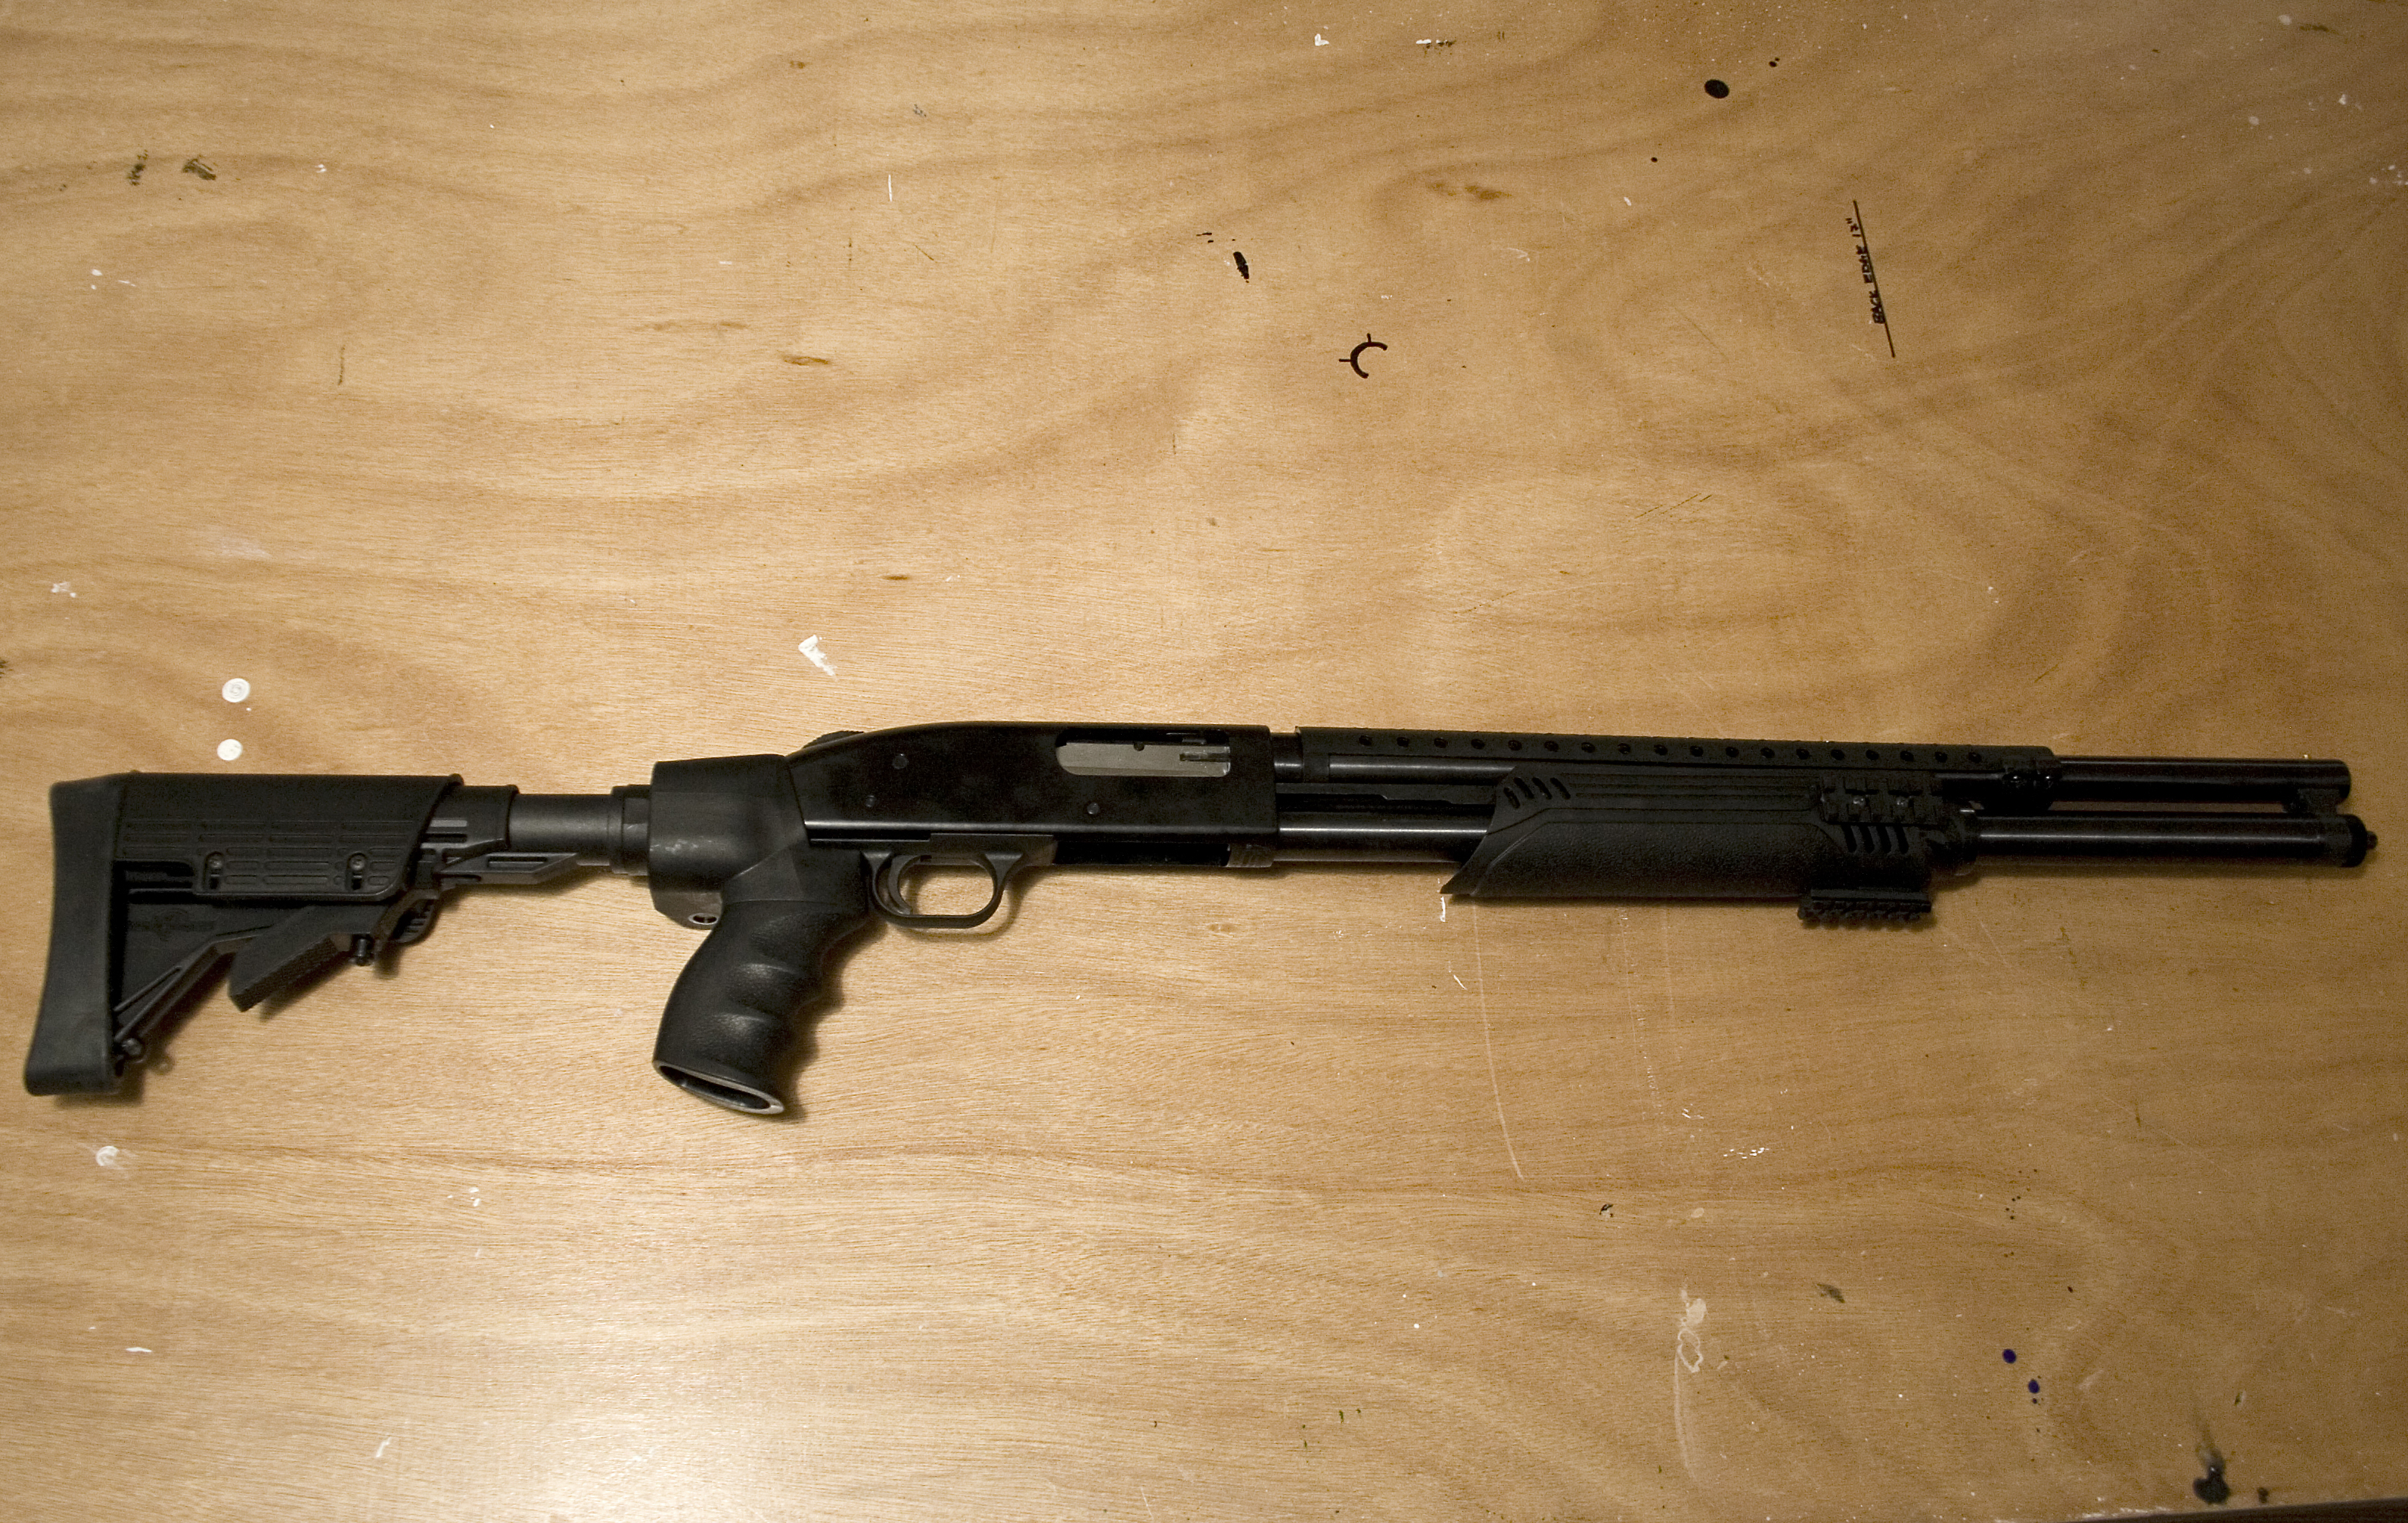 File:Mossberg500-tactical jpg - Wikimedia Commons